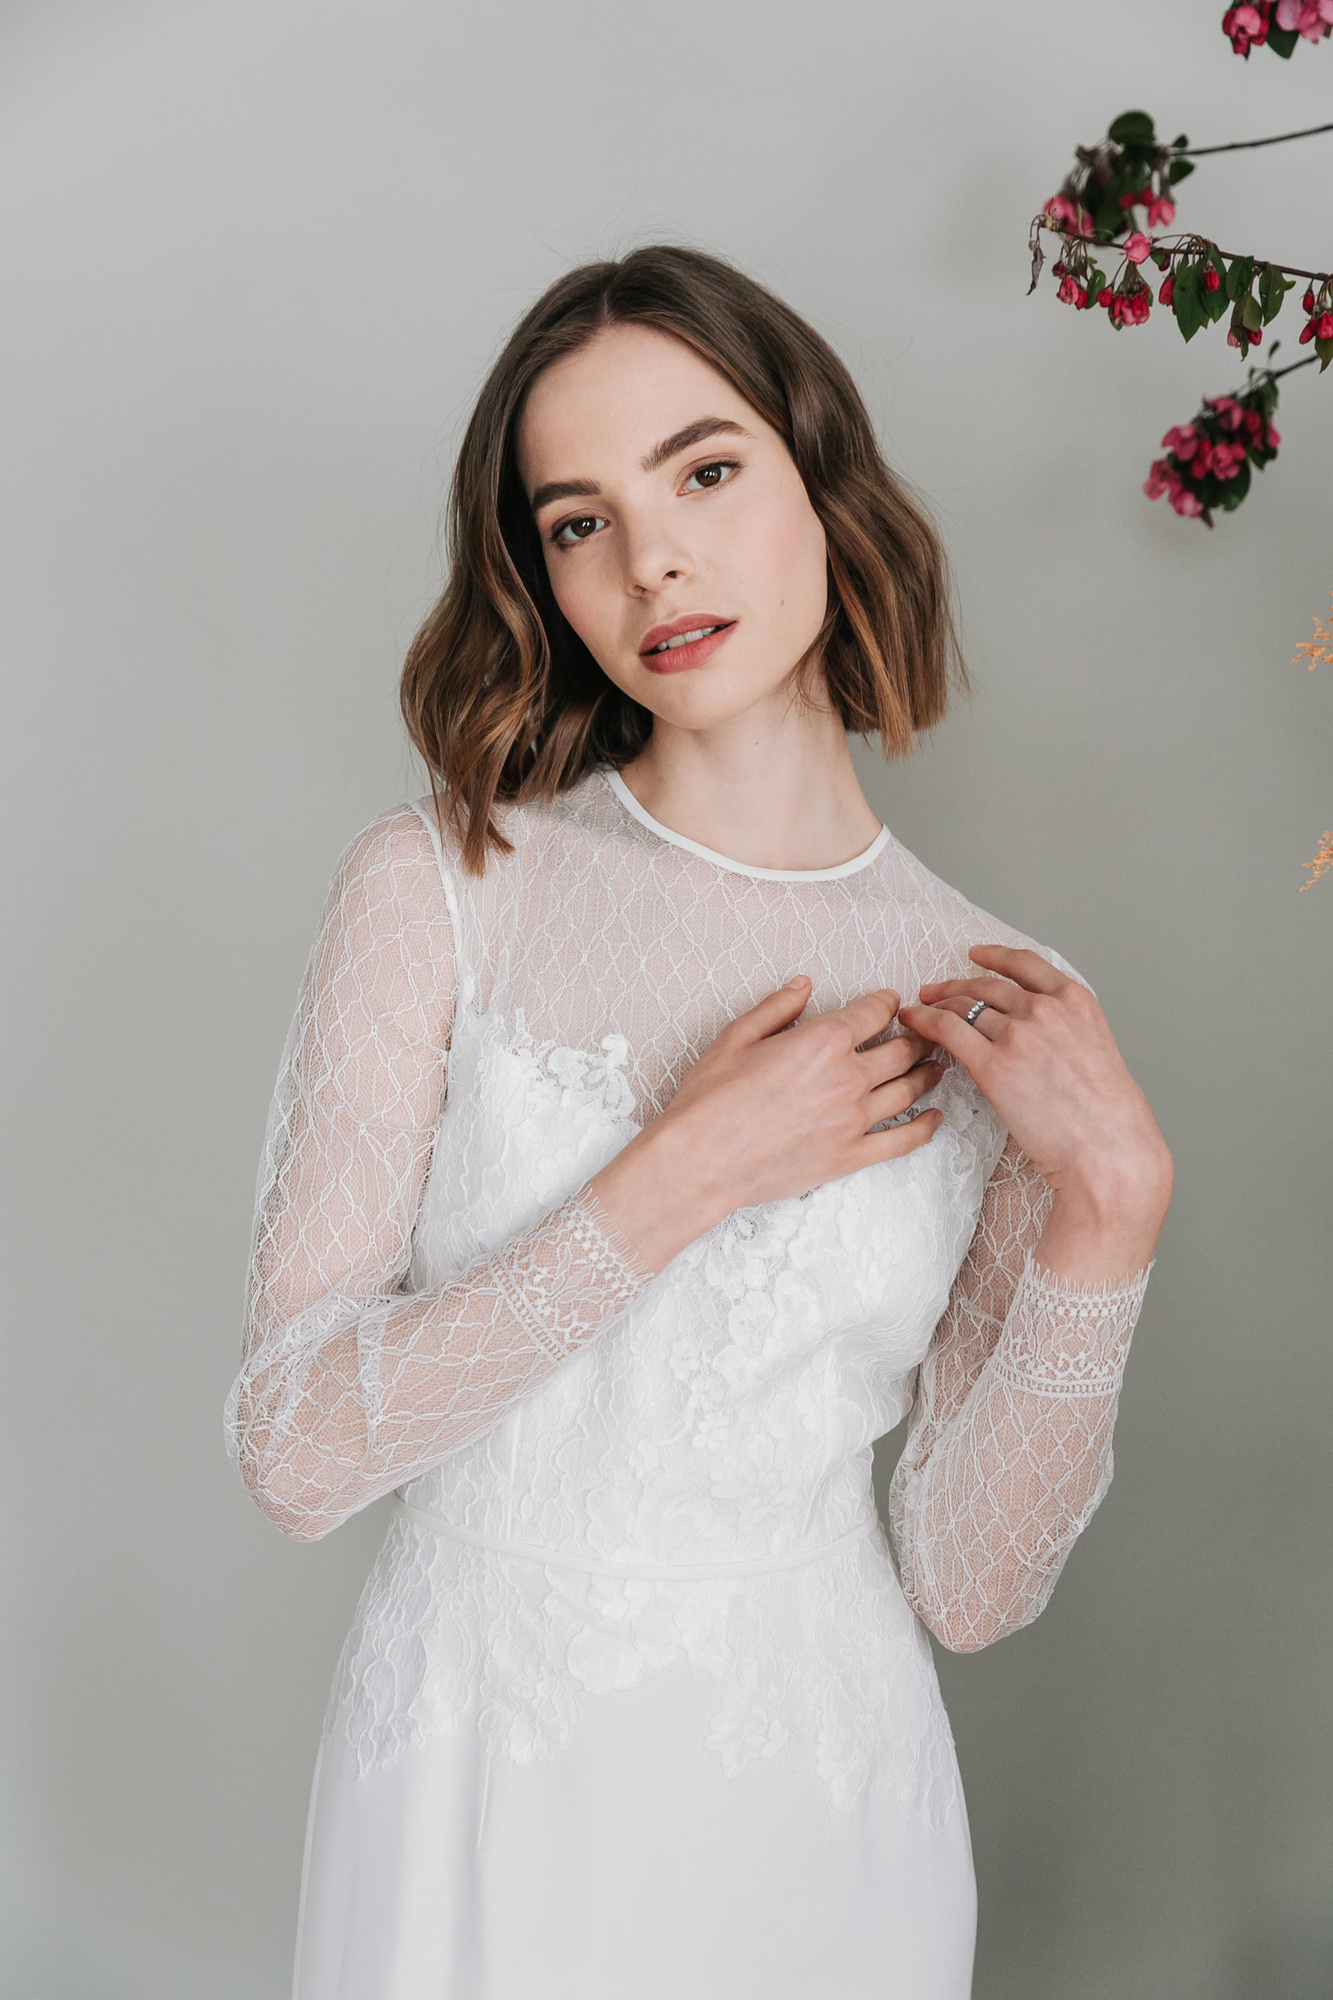 Kate-Beaumont-Sheffield-Geranium-Applique-Lace-Silk-Modern-Minimal-Long-Sleeved-Wedding-Gown-1.jpg